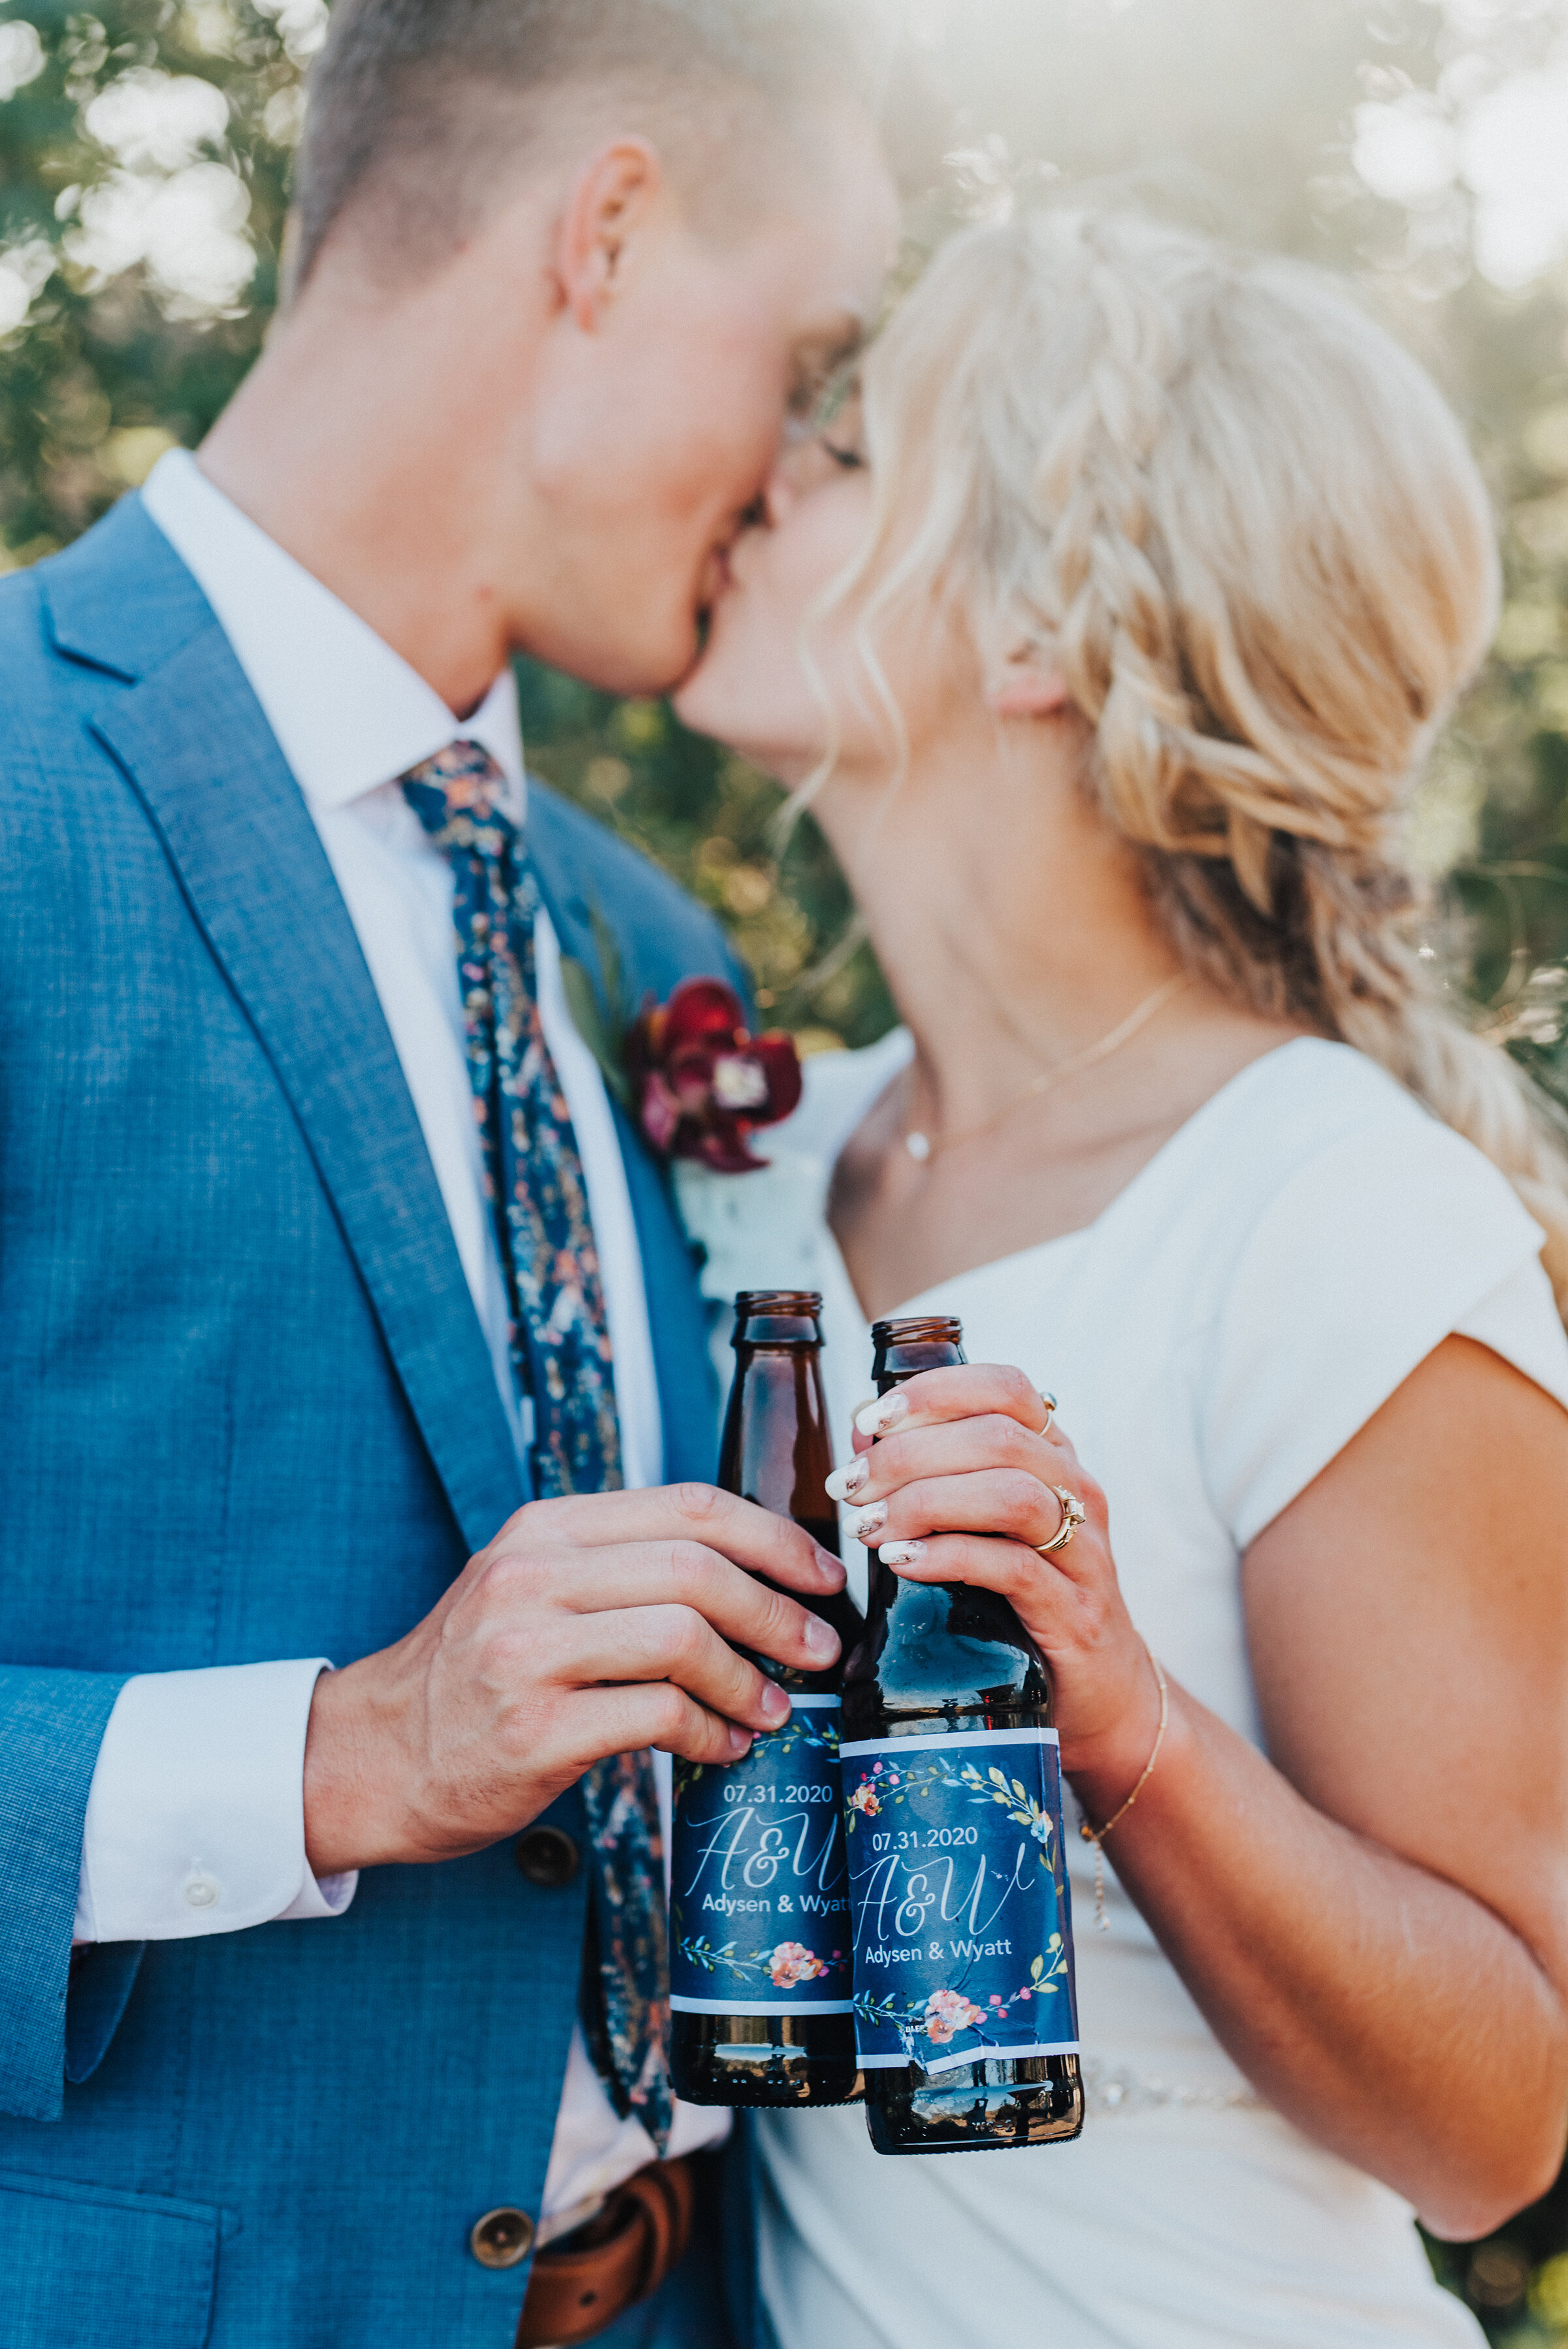 Locking lips with drinks in hand for these two newlyweds at their backyard wedding reception in Park City. Kristi Alyse Photography Logan Utah photographer Park City wedding photographer Drive-Thru wedding COVID wedding neon signs socially distant wedding bride and groom #kristialysephotography #weddingphotographer #utahweddings #parkcity #utahbrides #drivethruwedding #covidwedding #LoganUtahphotographer #utahweddingphotographer